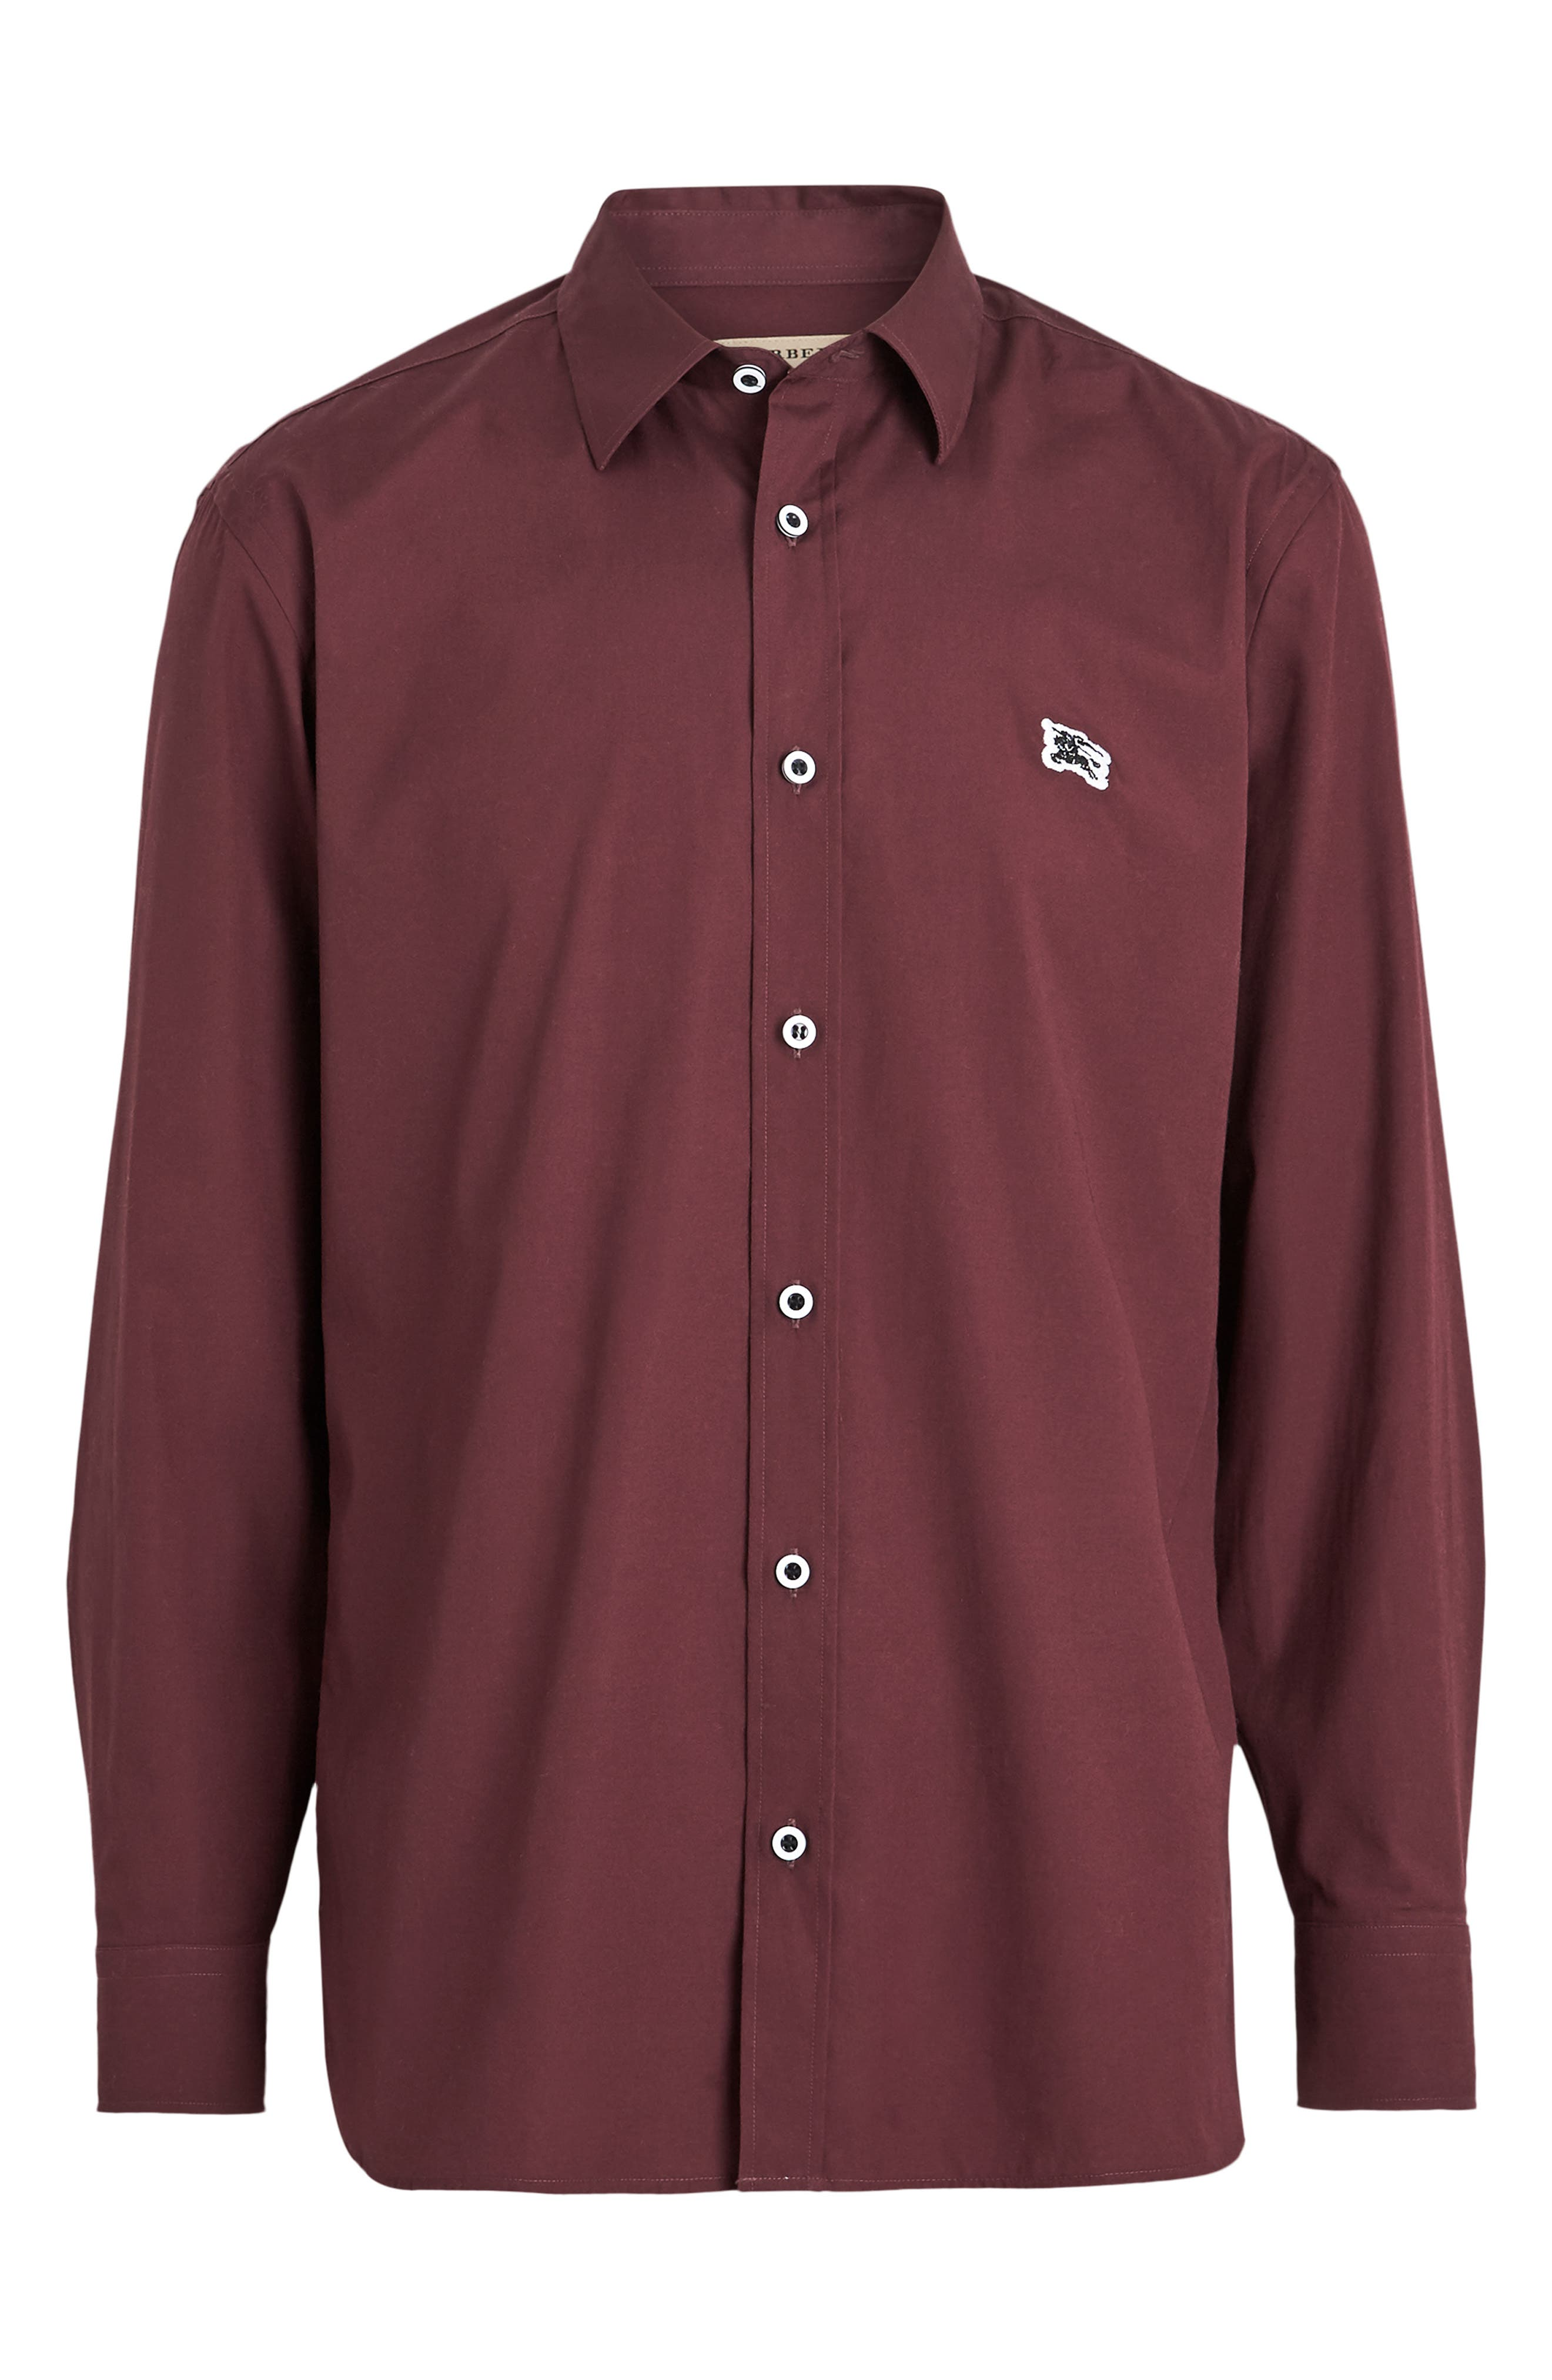 BURBERRY,                             William Sport Shirt,                             Alternate thumbnail 4, color,                             OXBLOOD